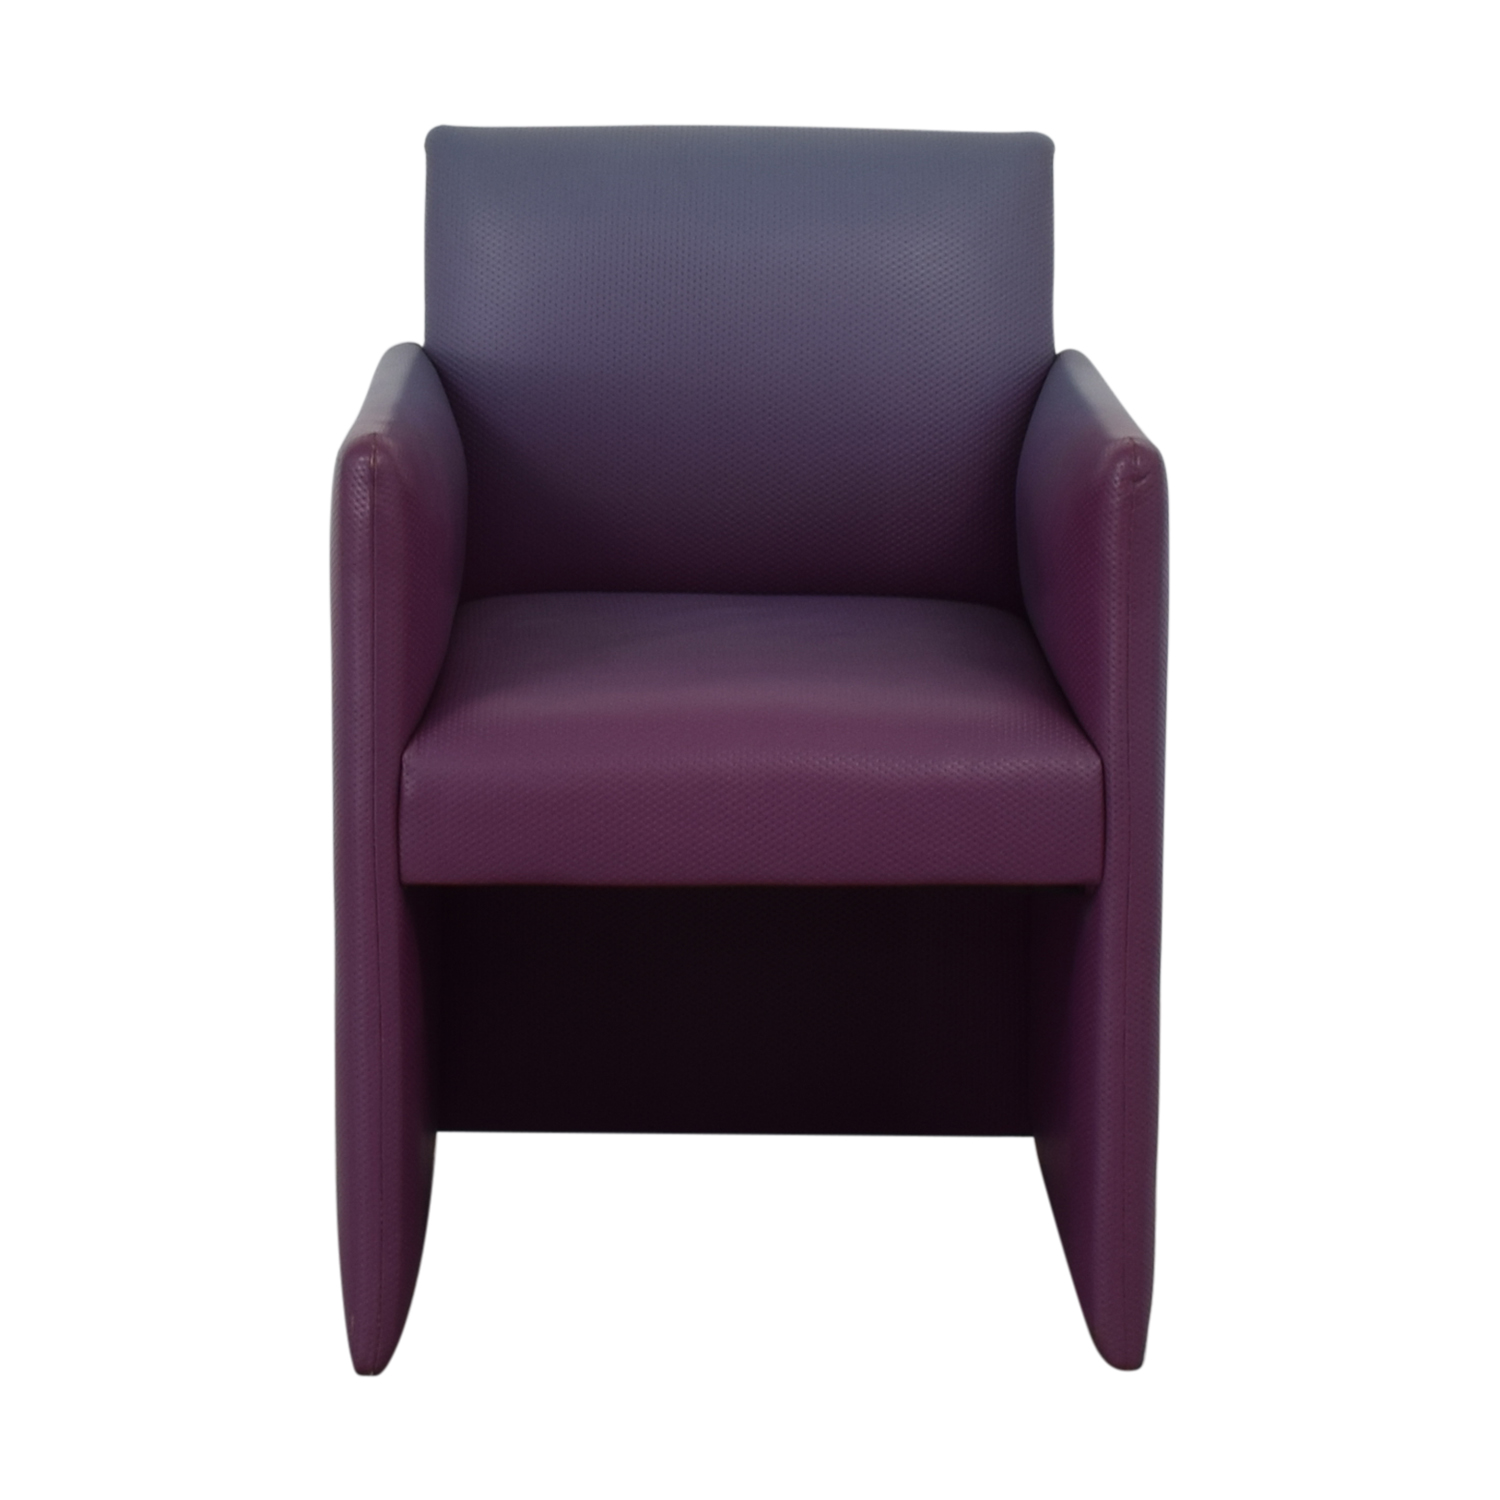 Purple Accent Chair 83 Off Furniture Masters Furniture Masters Purple Accent Chair